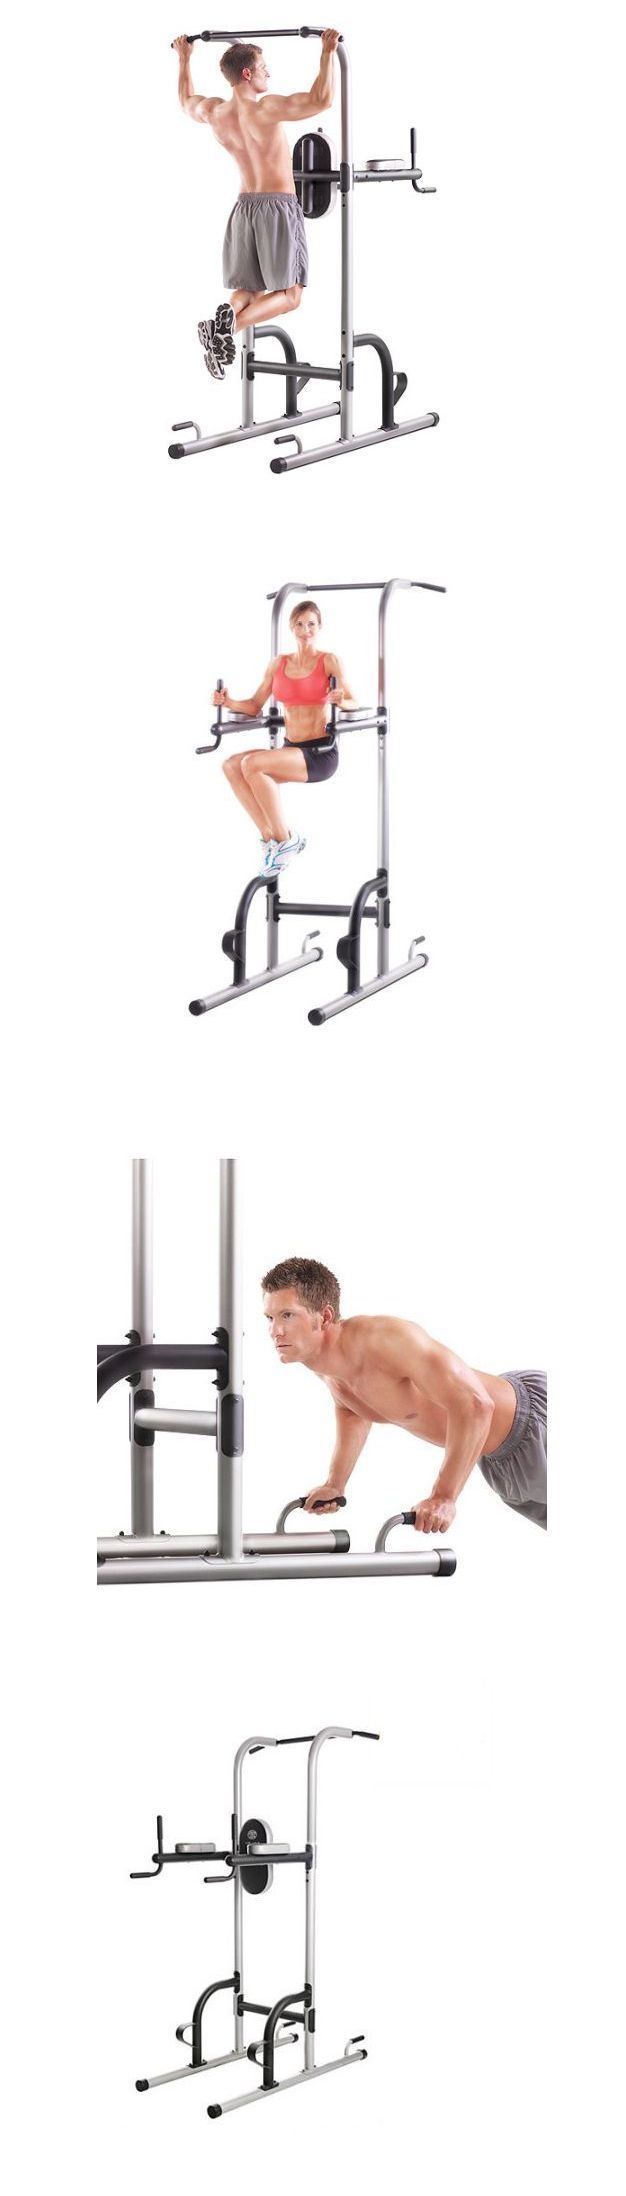 Pull Up Bars 179816: Free Standing Pull Up Bar Push Up Bar Roman Chair Stand Exercise Equipment Ab -> BUY IT NOW ONLY: $1139.95 on eBay!